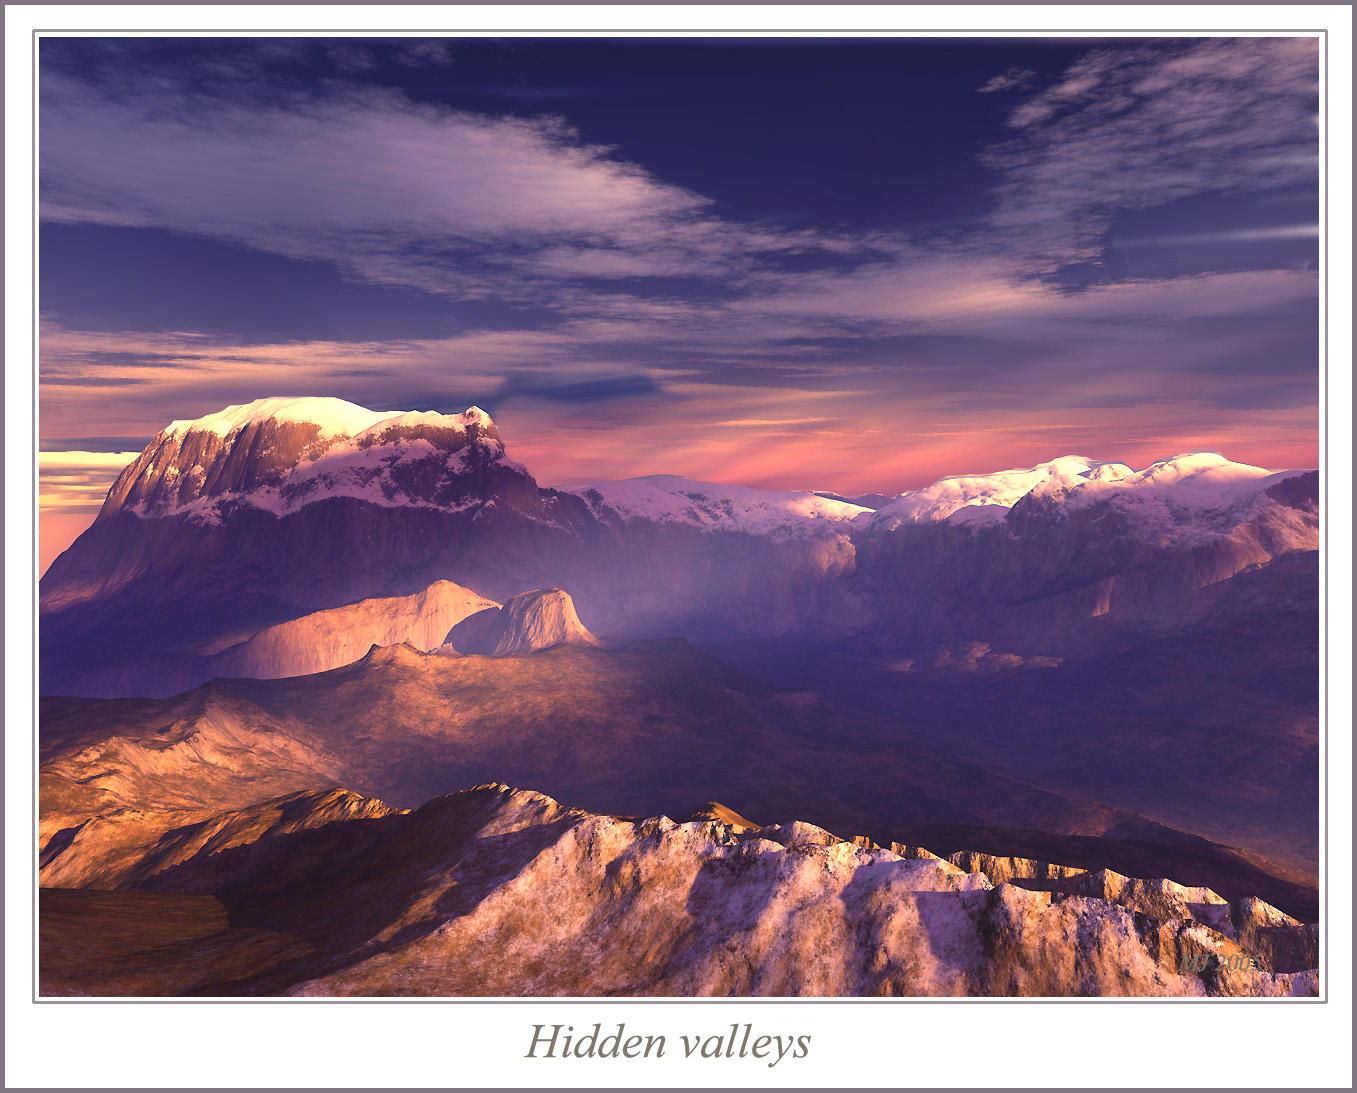 Hidden_valleys_by_sandpiper6.jpg